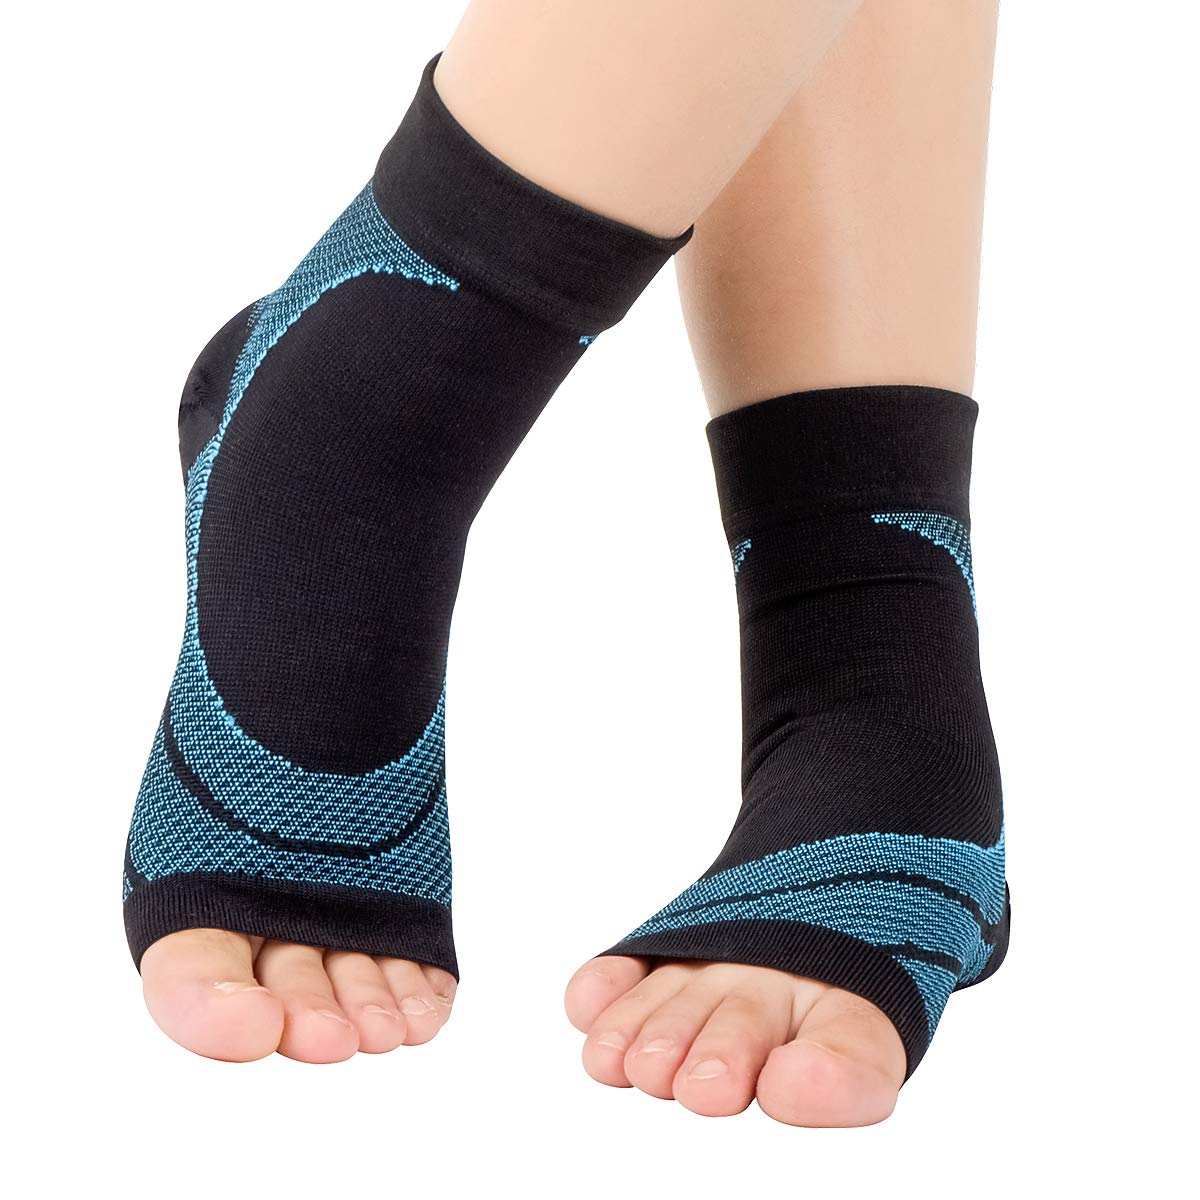 Arch Support Protection Everyday Use Men /& Women ADiPROD Compression Foot Sleeves Ankle /& Heel Pain Sports Socks for Plantar Fasciitis Pain Relief